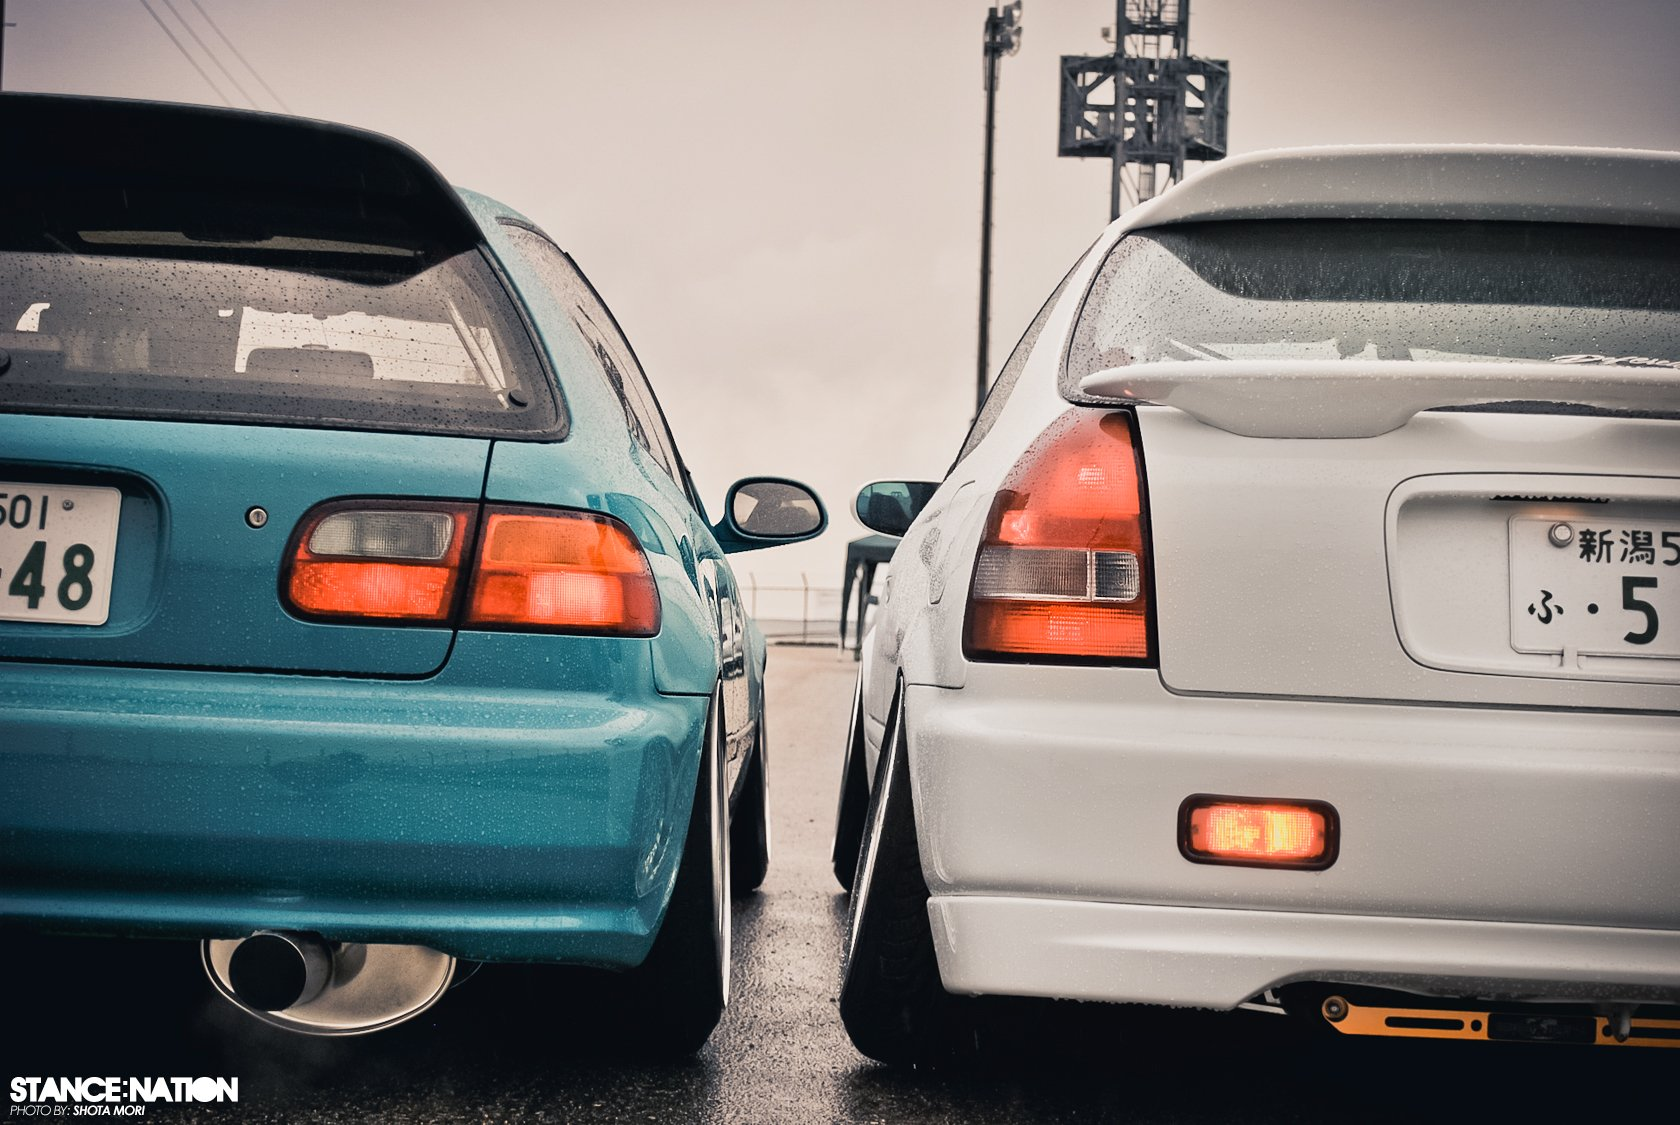 Honda Phone Wallpapers Honda Eg6 Civic Tuning Custom Wallpaper 1680x1125 797237